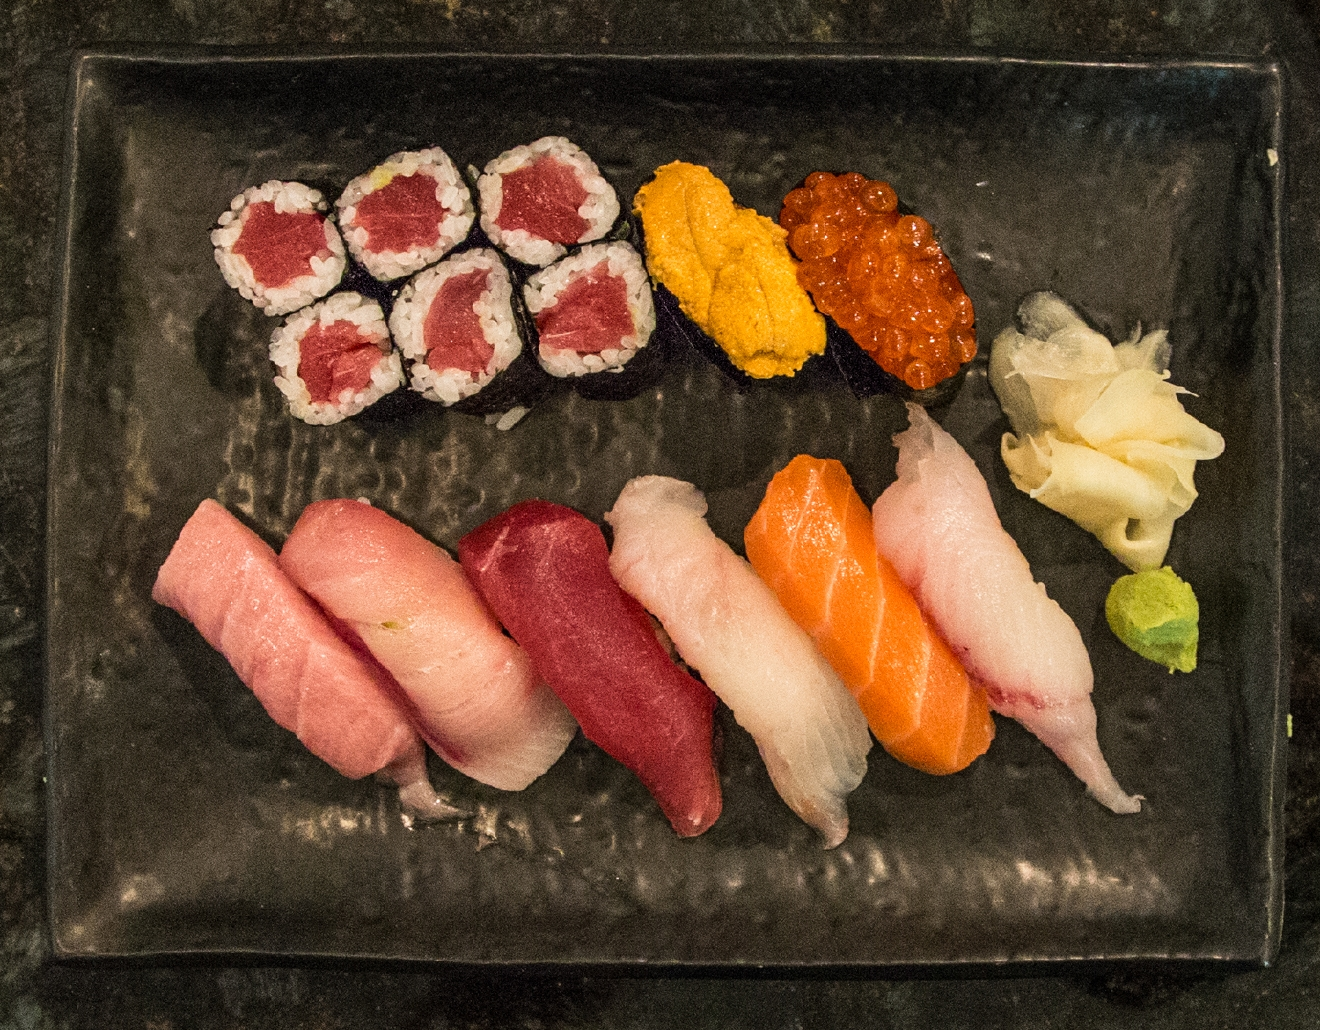 This plate features a salmon roll, a sea urchin roll, a roe roll, bluefin tuna, yellowtail, tuna, fluke, and hobo / Image: Catherine Viox